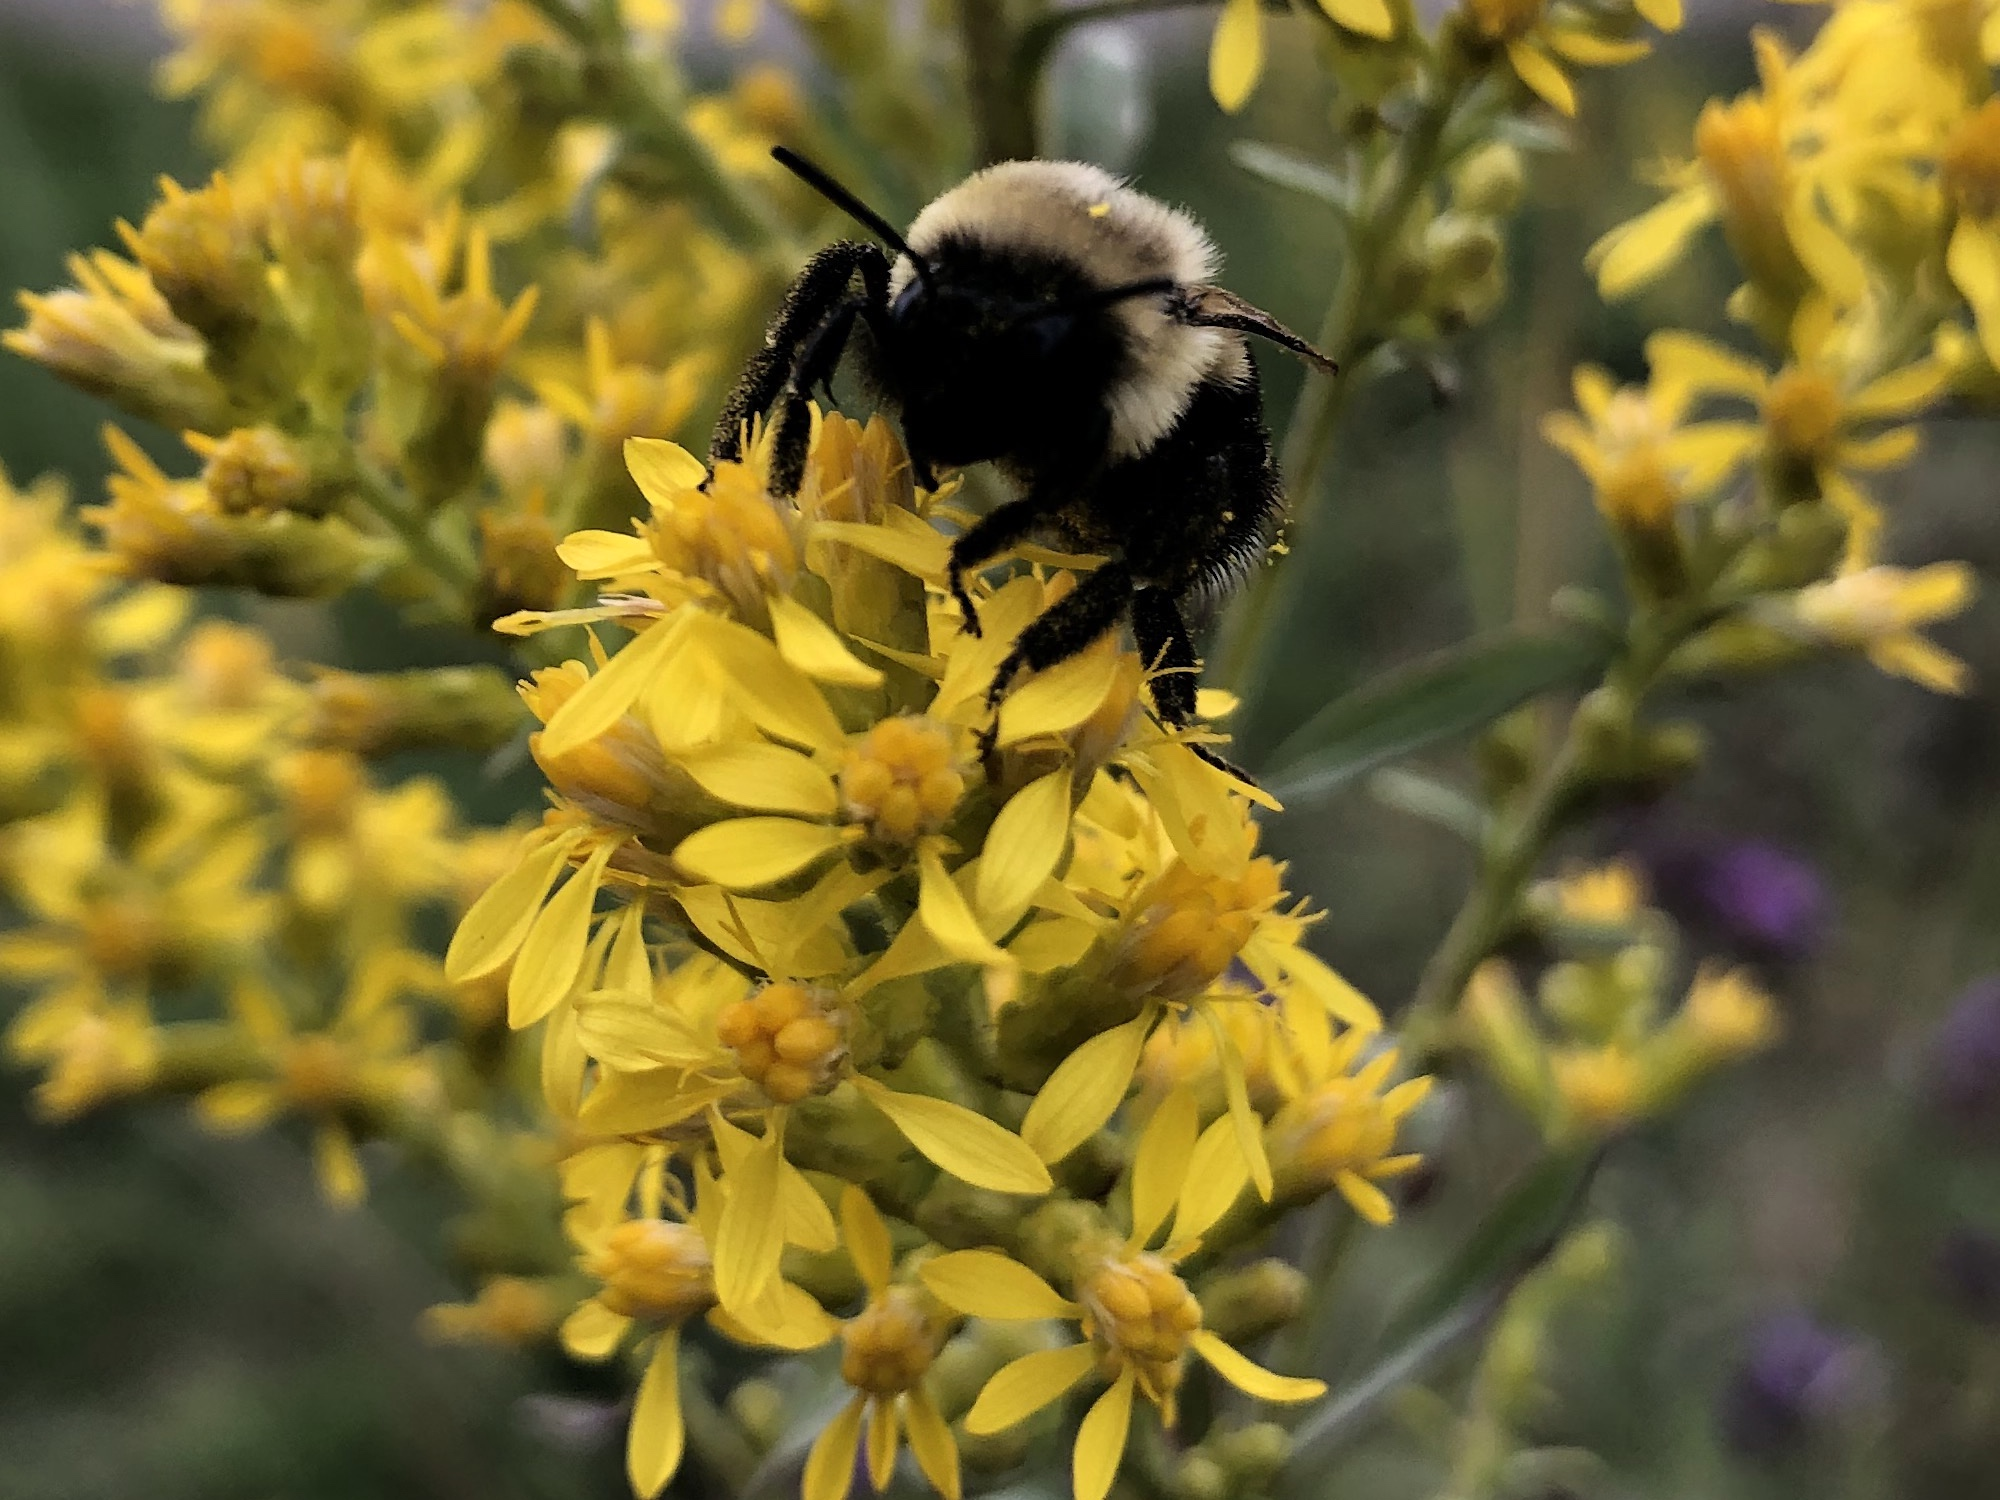 Bumblebee on Showy Goldenrod on September 30, 2020 October 2, 2020.